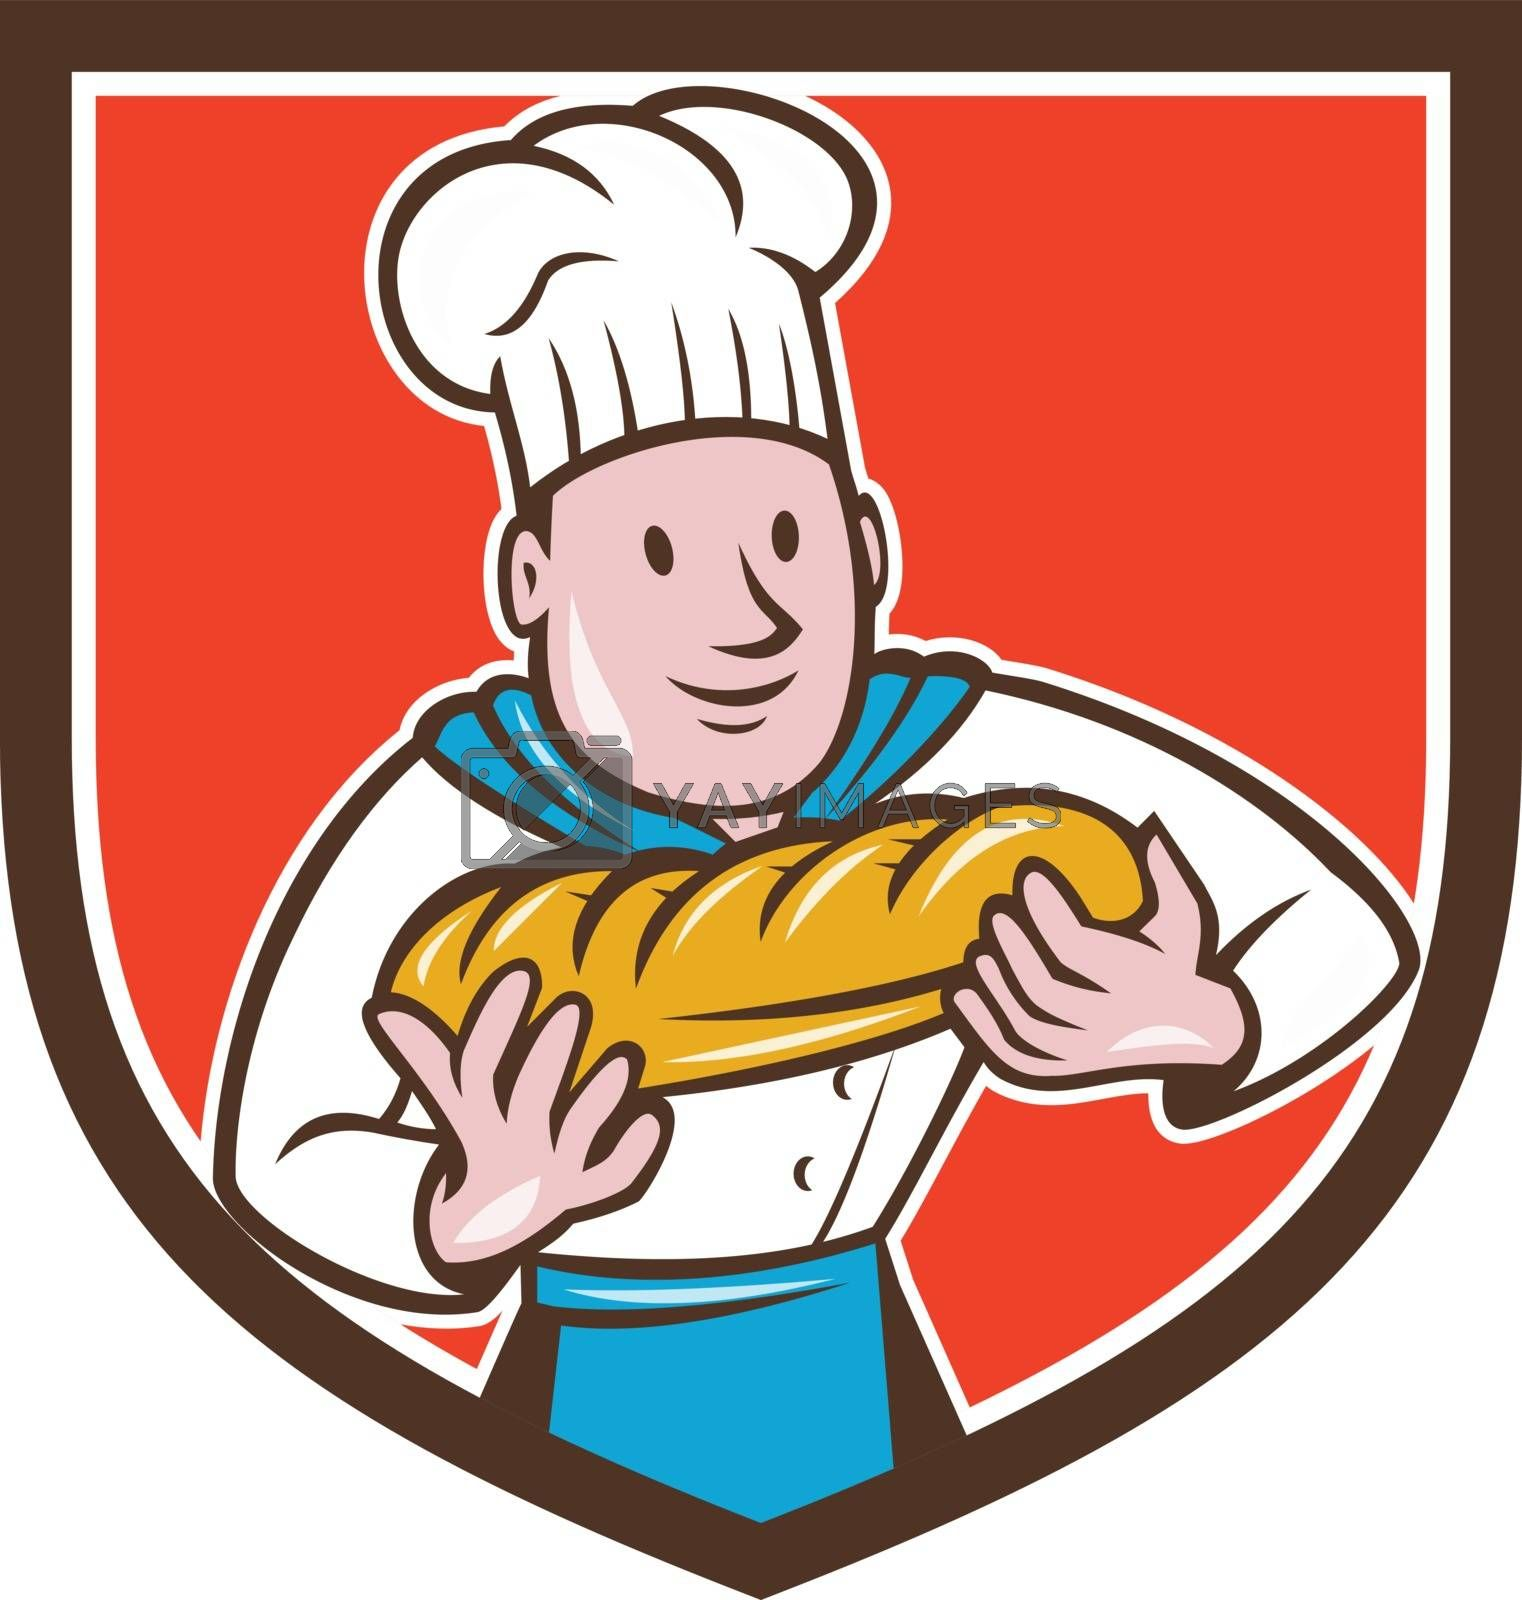 Baker Holding Bread Loaf Shield Cartoon Royalty Free Stock Image Stock Photos Royalty Free Images Vectors Footage Yayimages